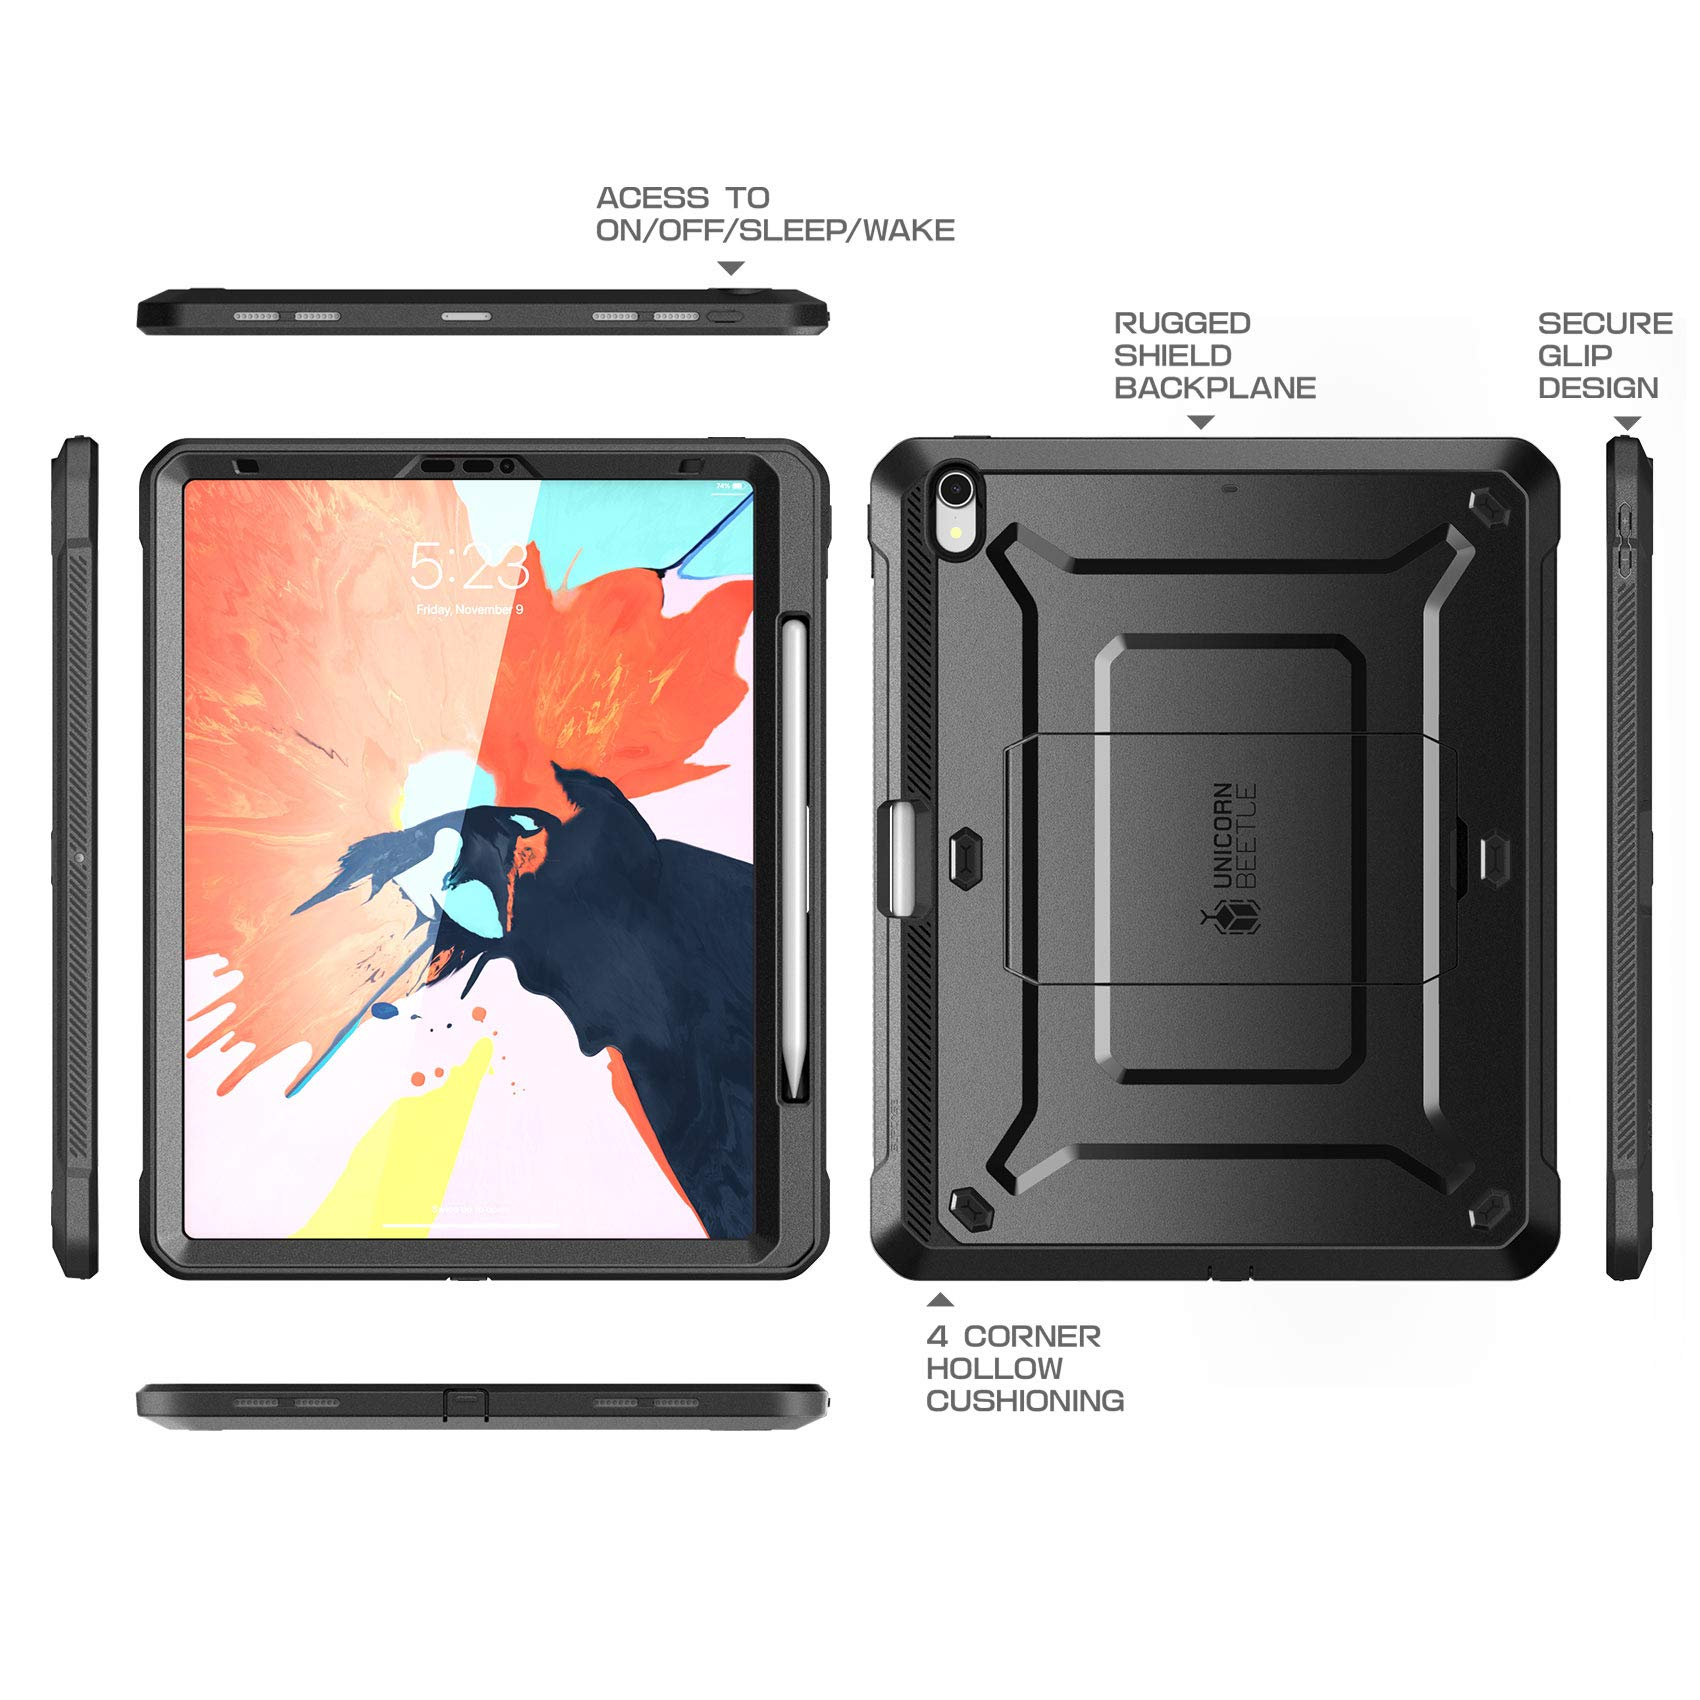 SUPCASE Case for iPad Pro 11 2018, Support Pencil Charging with Built-in Screen Protector Full-Body Rugged Kickstand Protective Case for iPad Pro 11 inch 2018 Release-UB Pro Series (Black) by SUPCASE (Image #3)